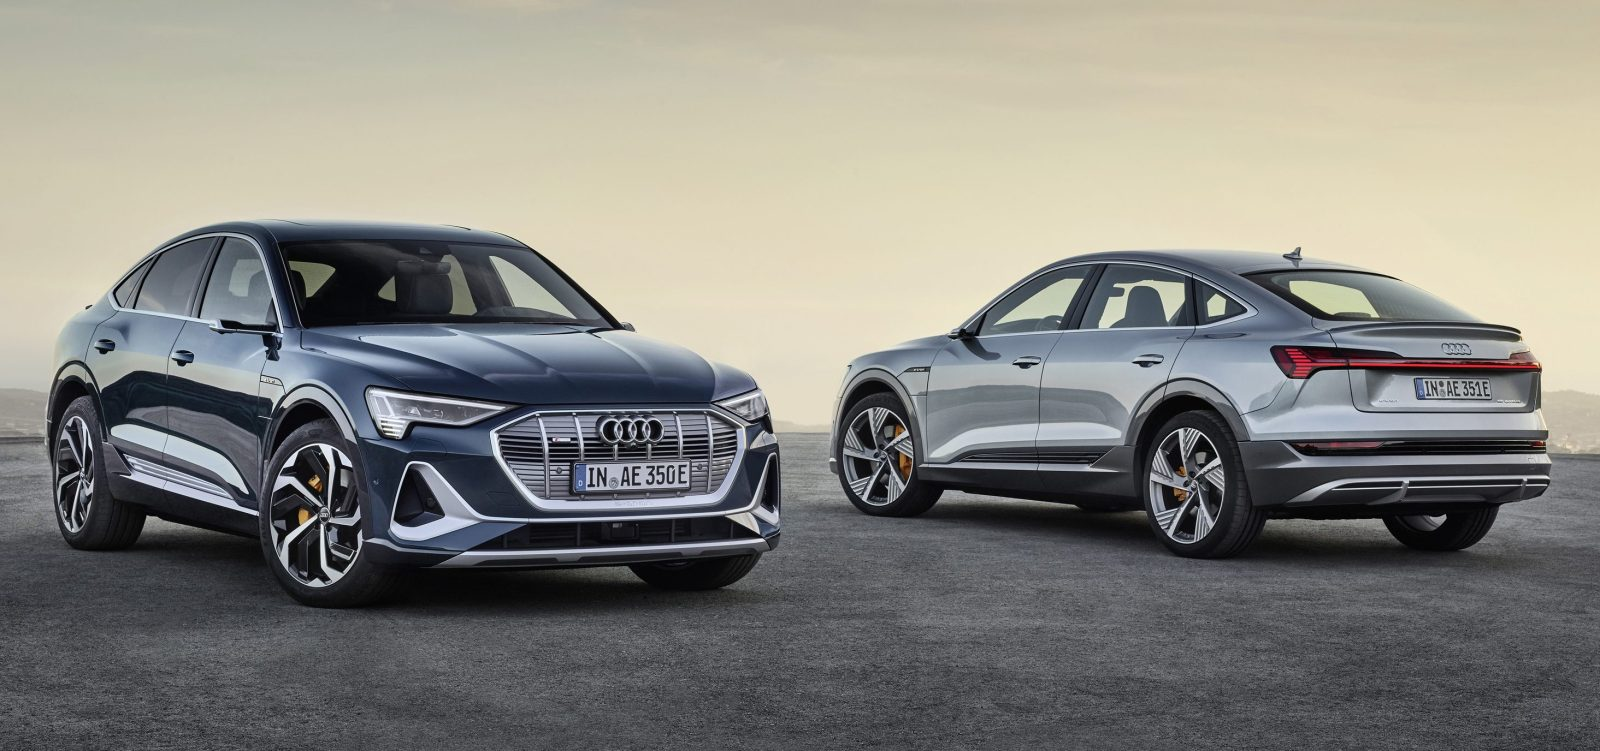 Audi e-tron Sportback: Audi unveils coupé version of its electric SUV